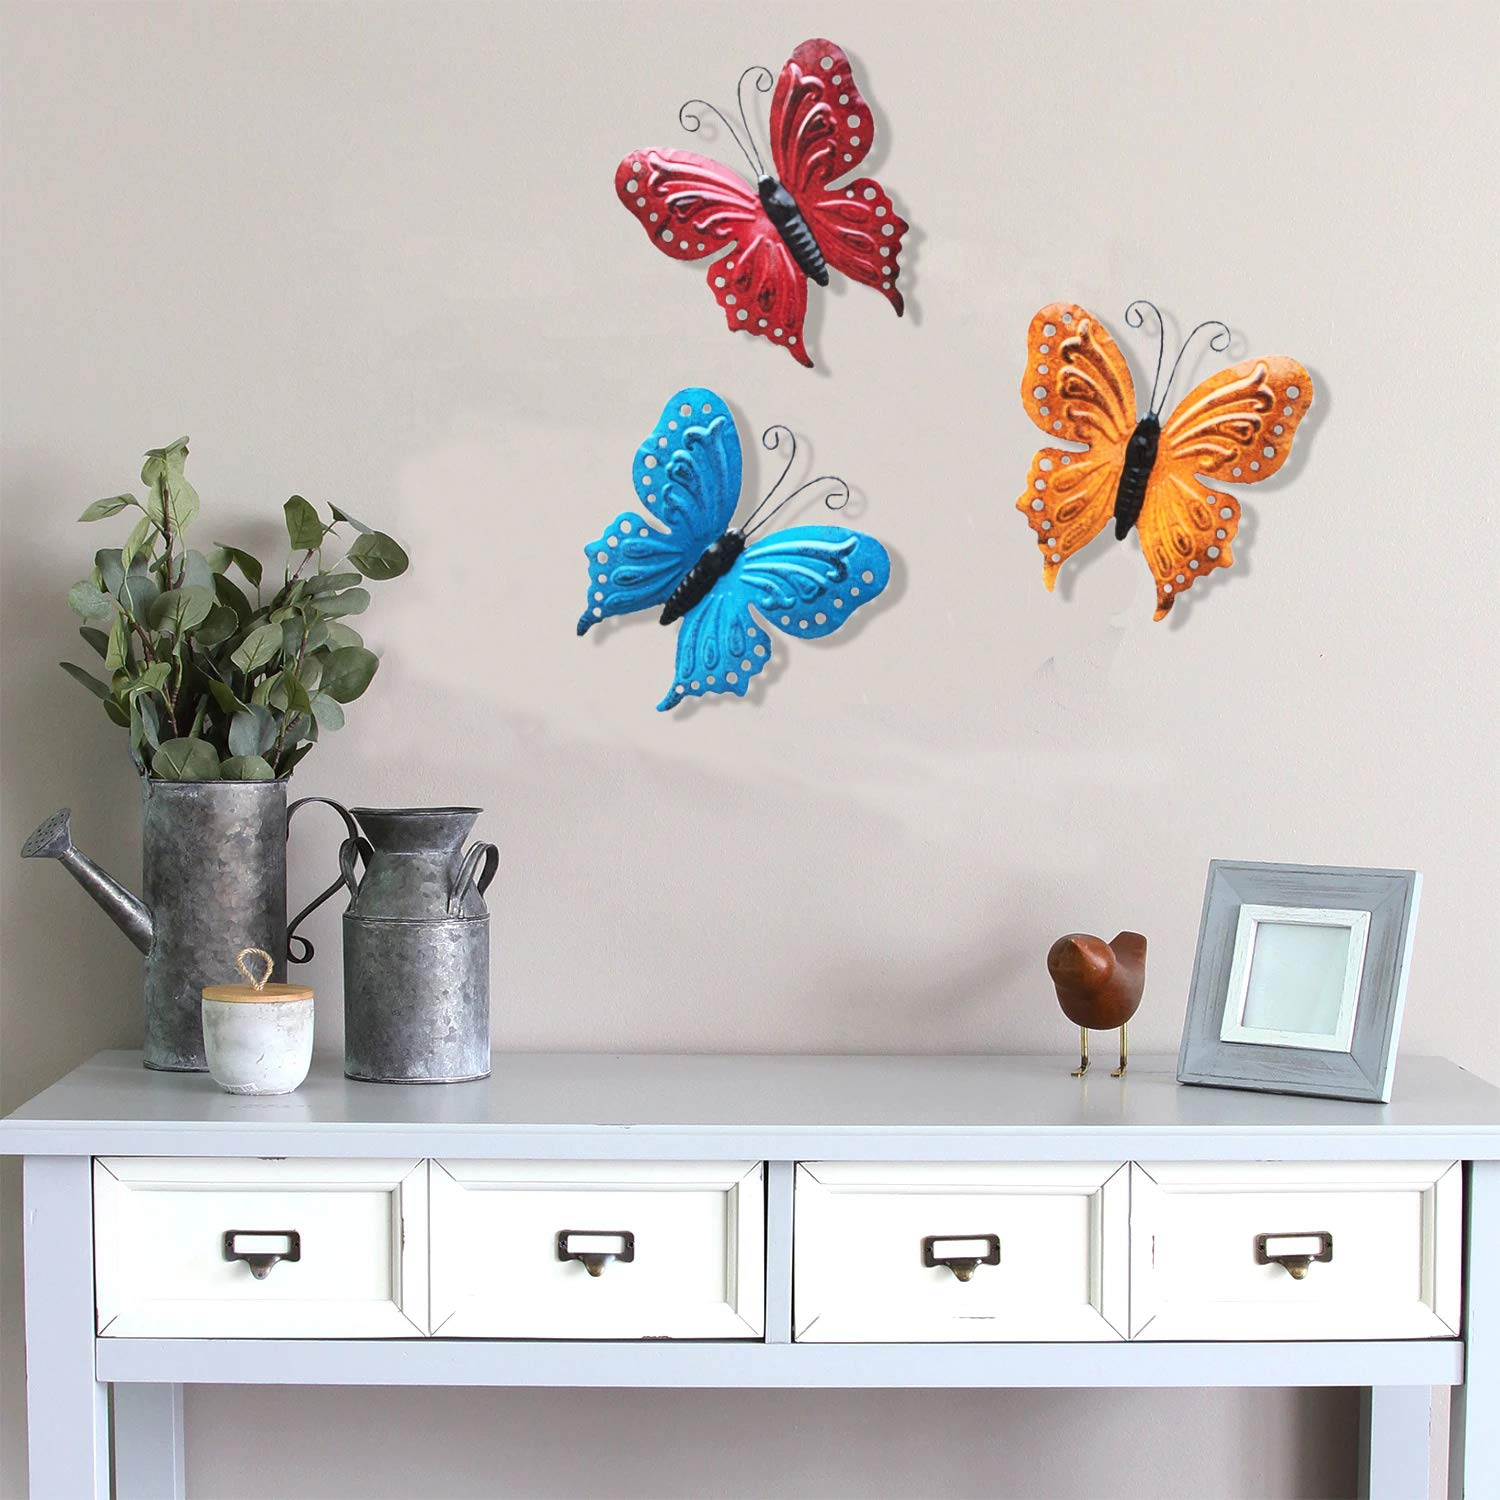 ShabbyDecor Metal Butterfly Hanging Decoration for Indoor or Outdoor Set of 3 81NAGMB11RL